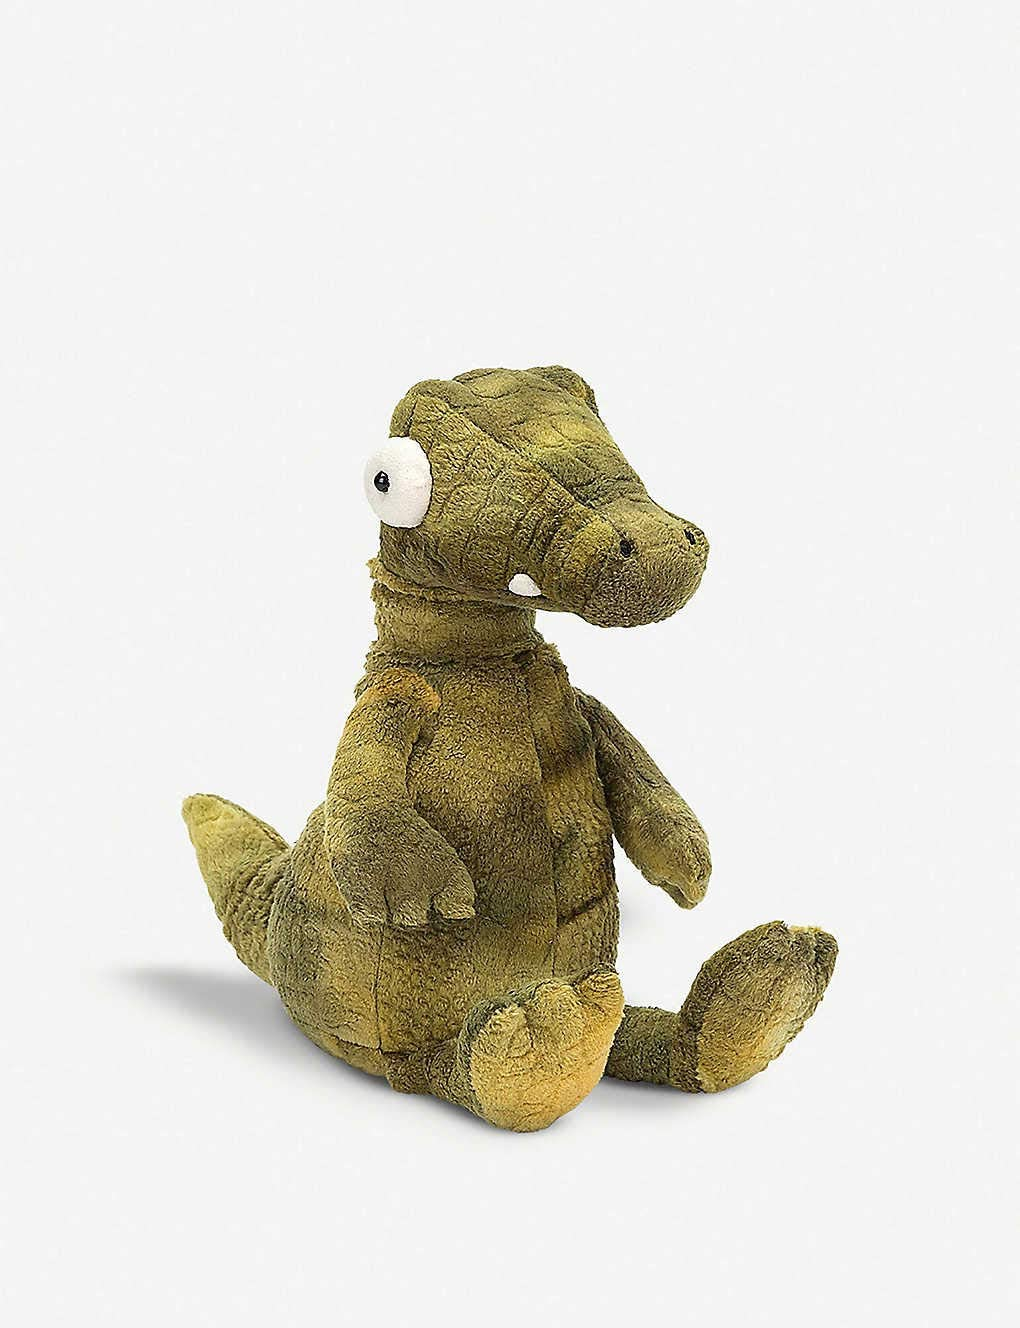 Jellycat Alan Alligator Stuffed Animal, 13 inches